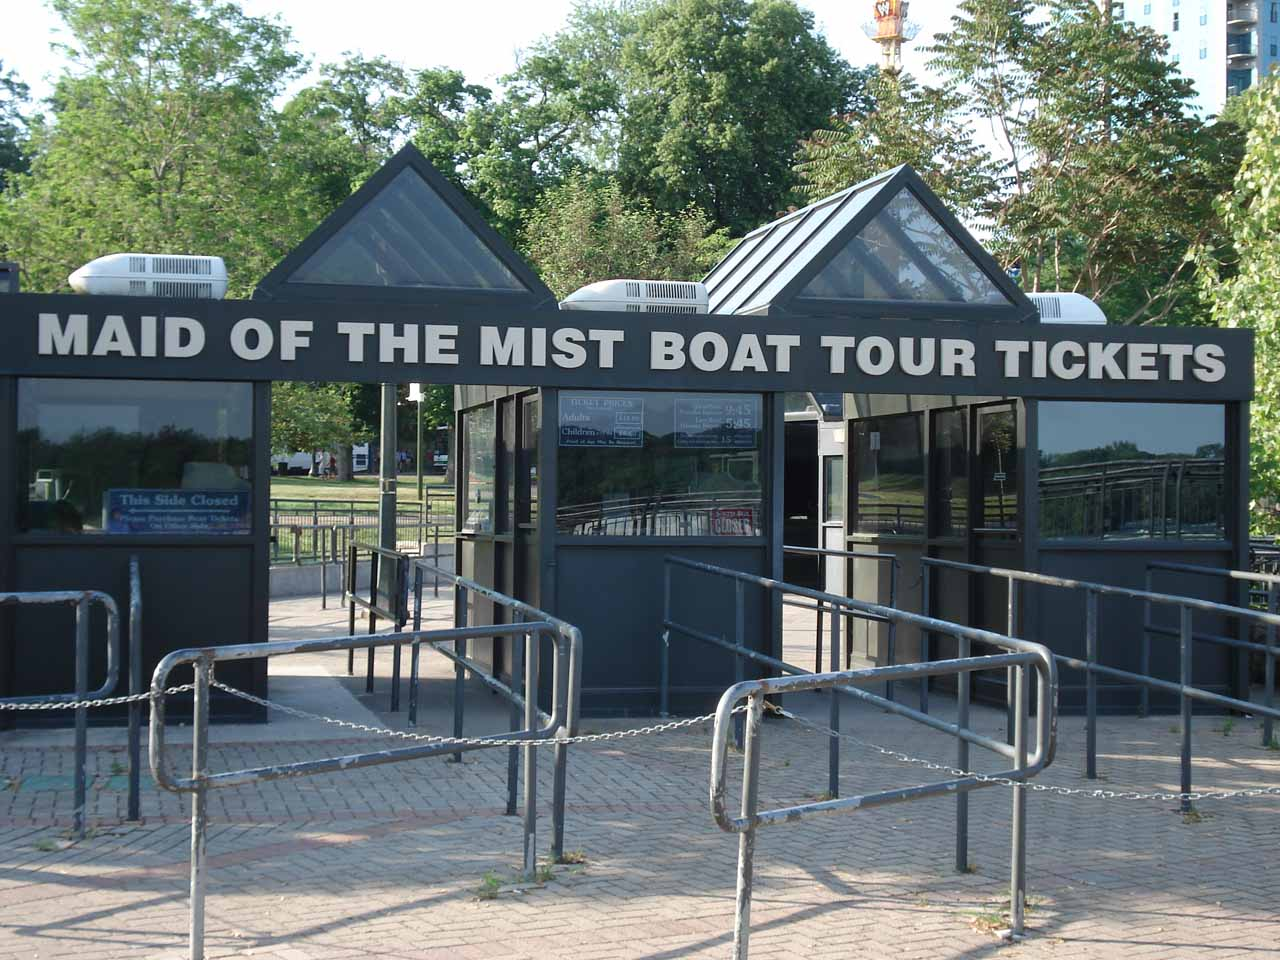 Ticket booths for Maid of the Mist